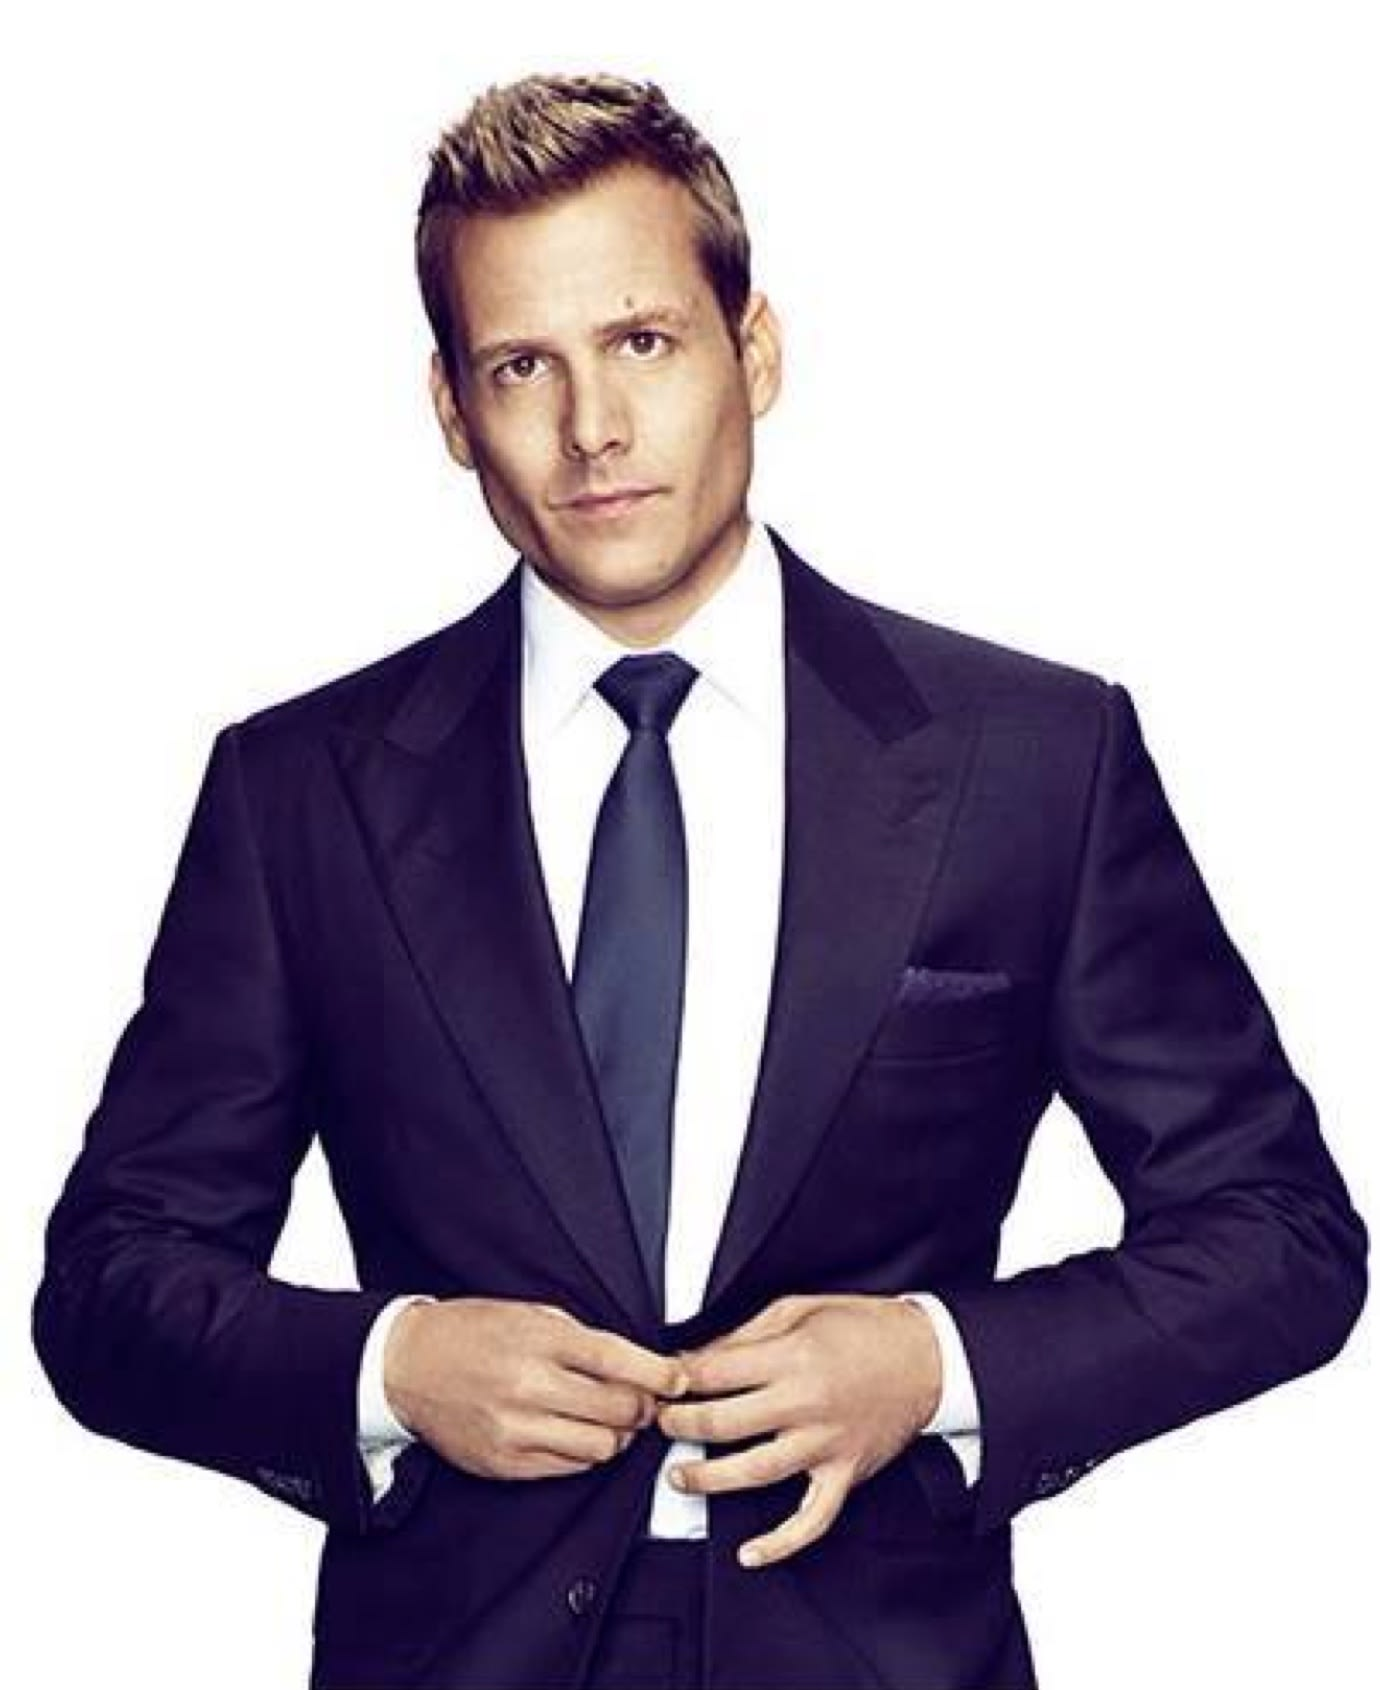 Harvey Specter from Suits.